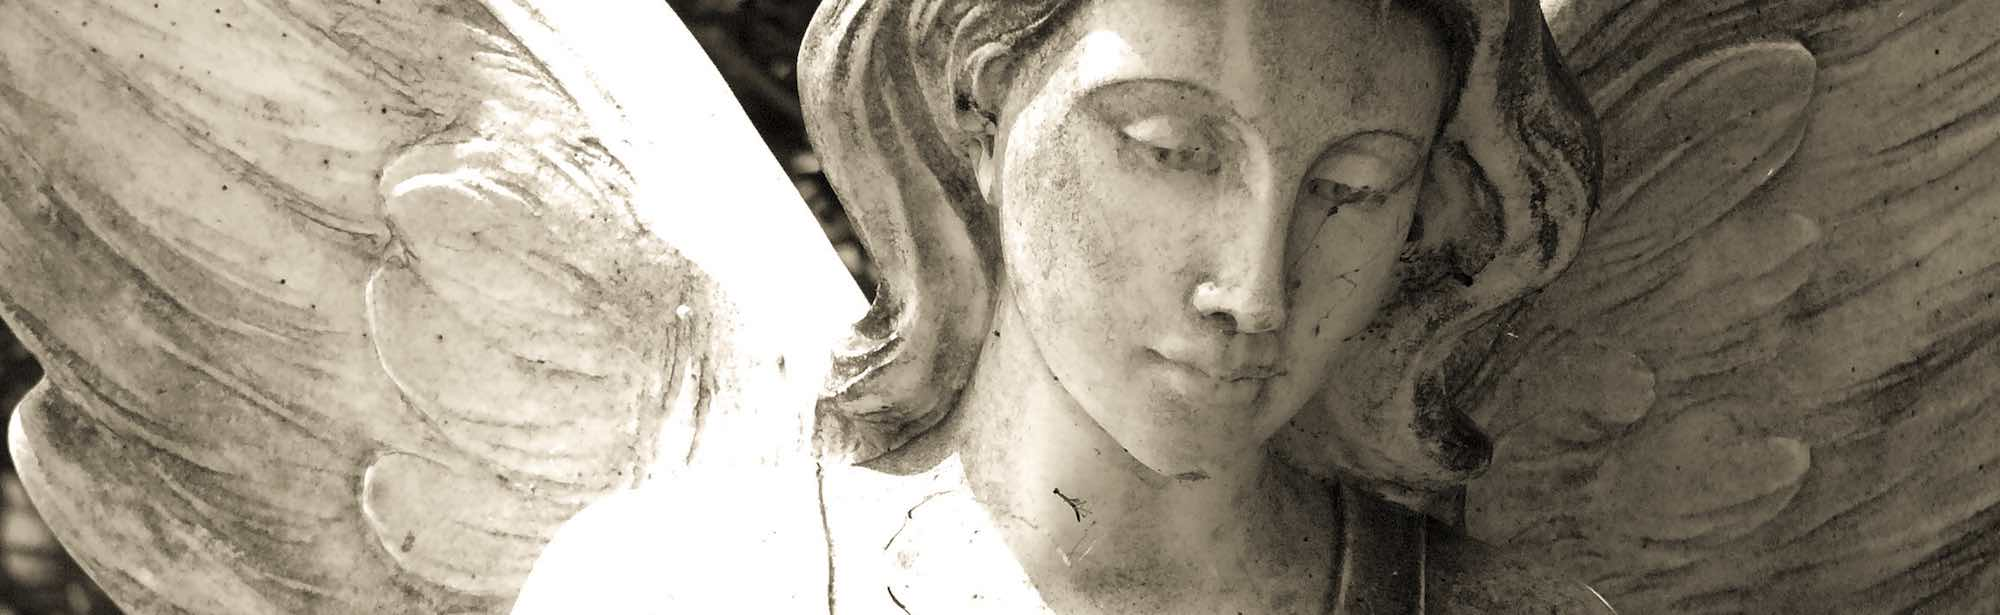 Close up of statue of a female angel in Bonaventure Cemetery